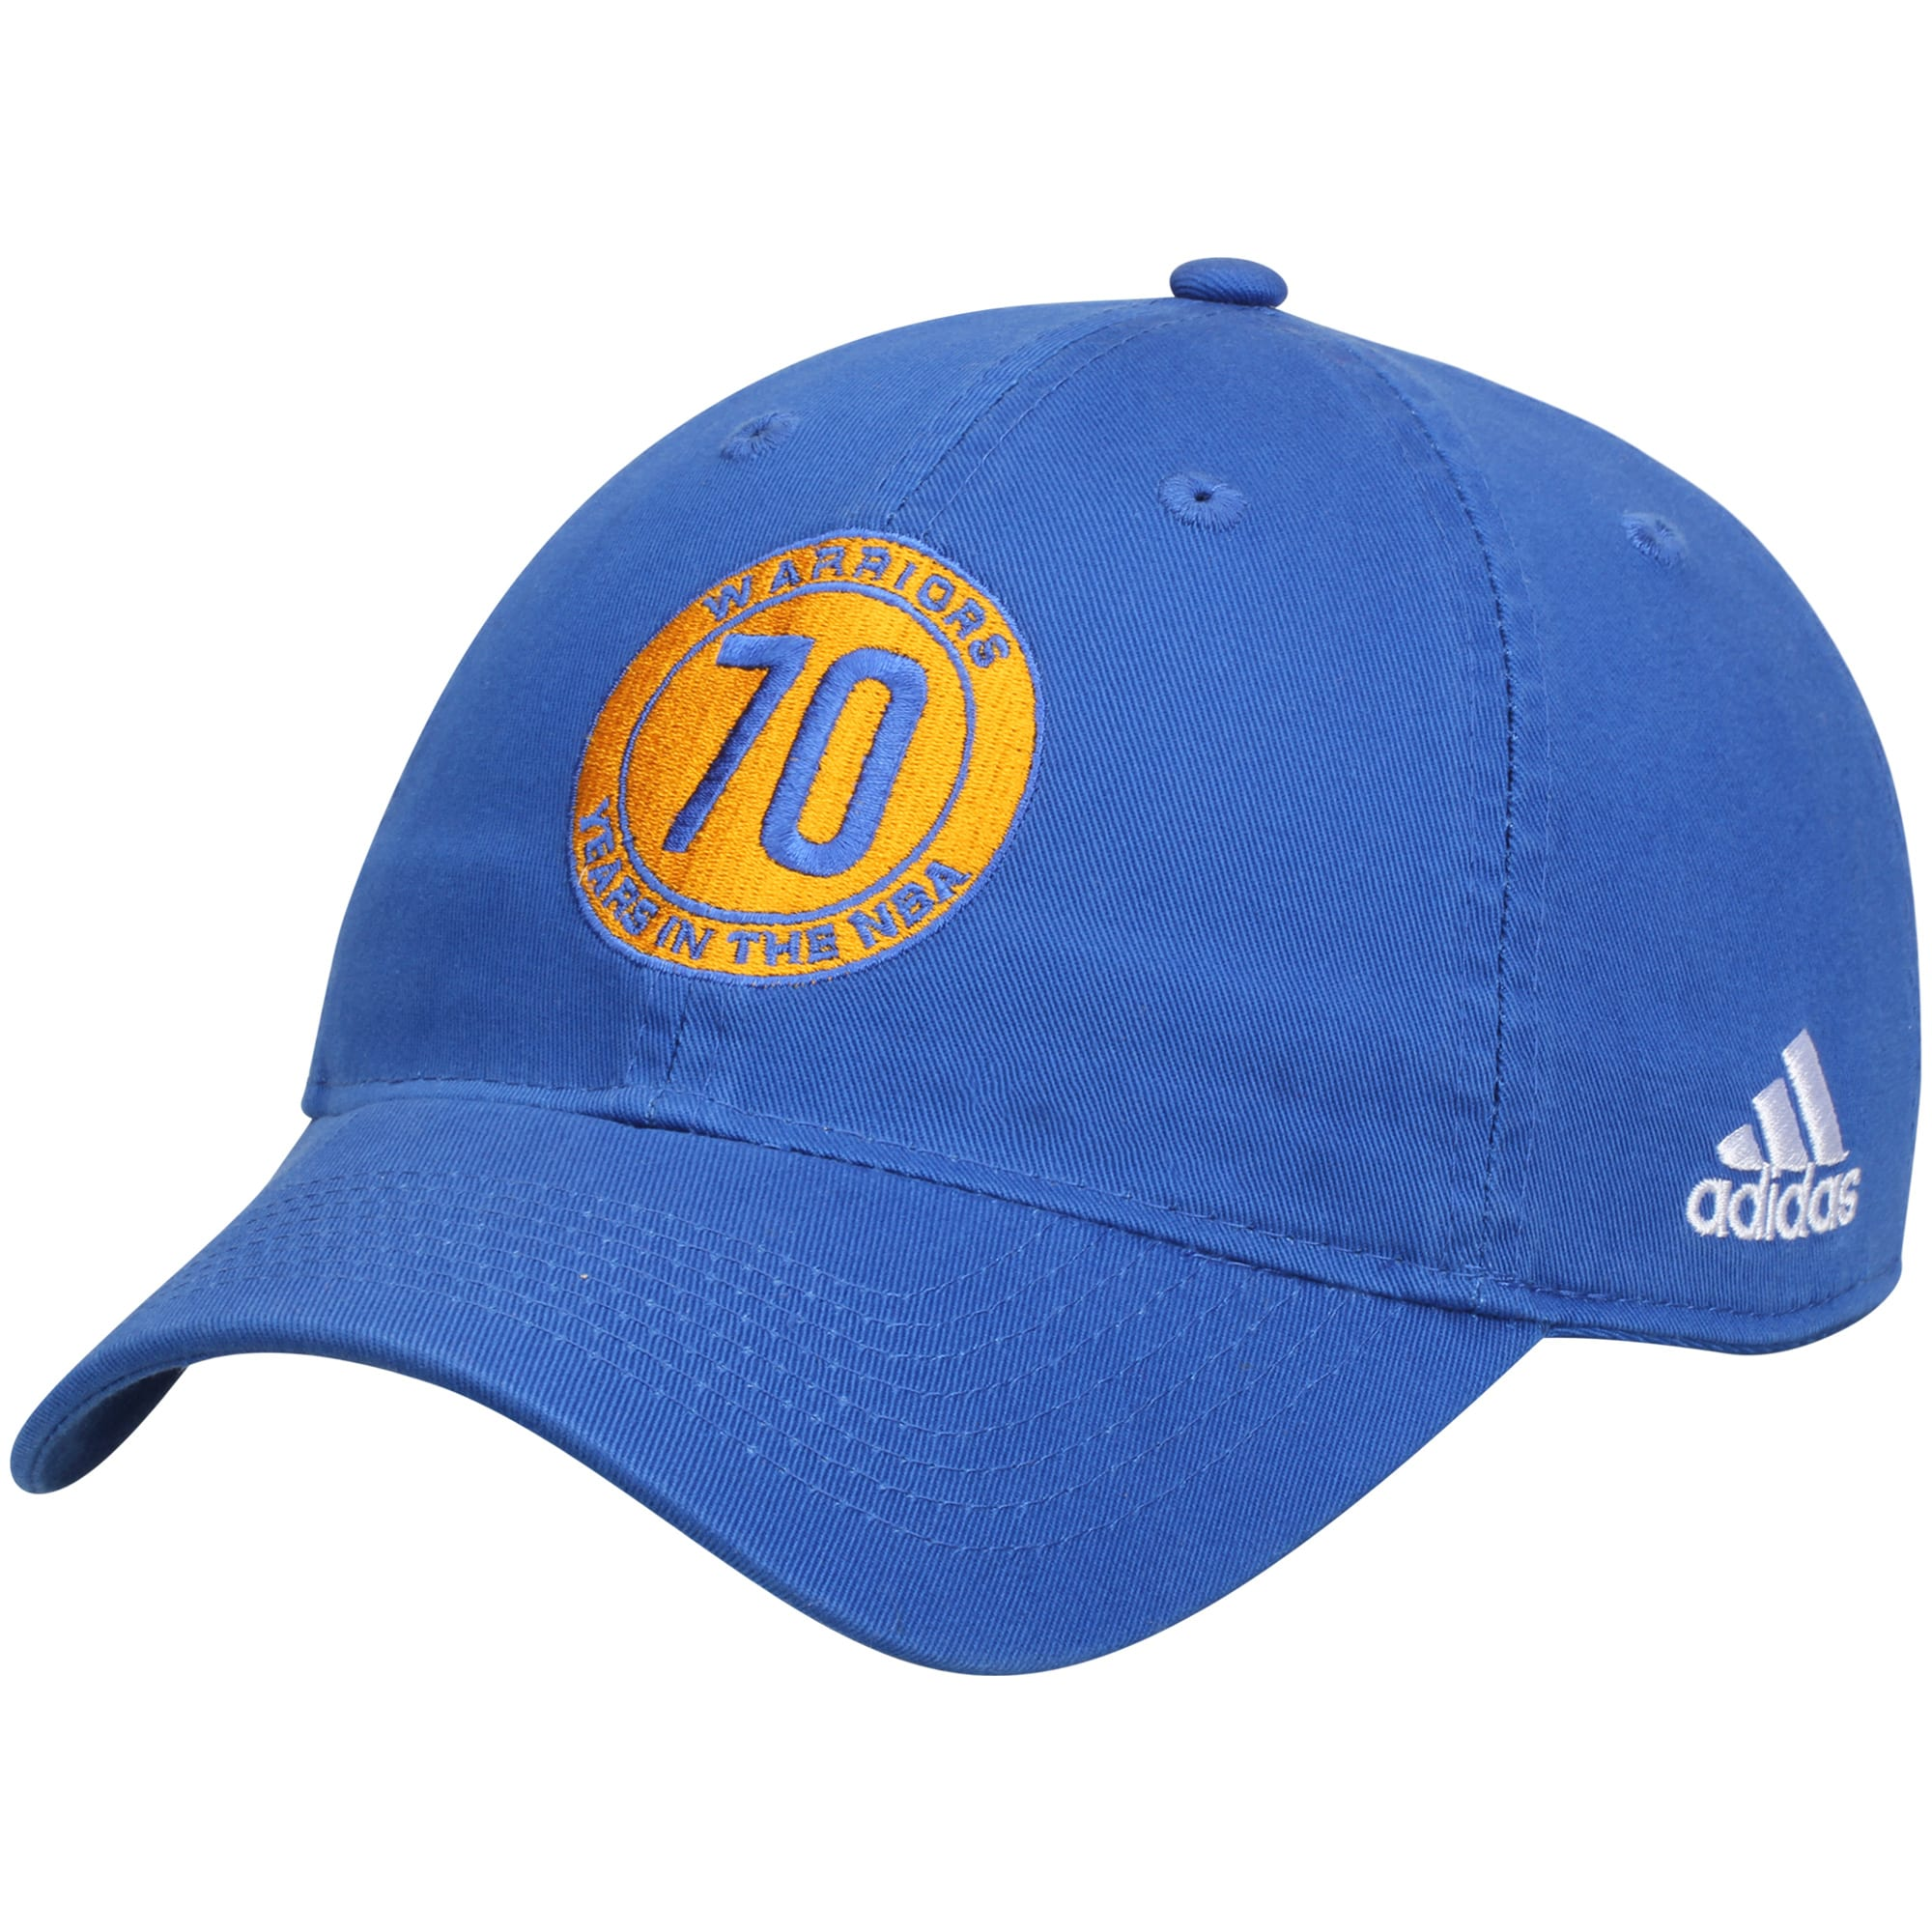 Golden State Warriors adidas Anniversary Adjustable Hat - Royal